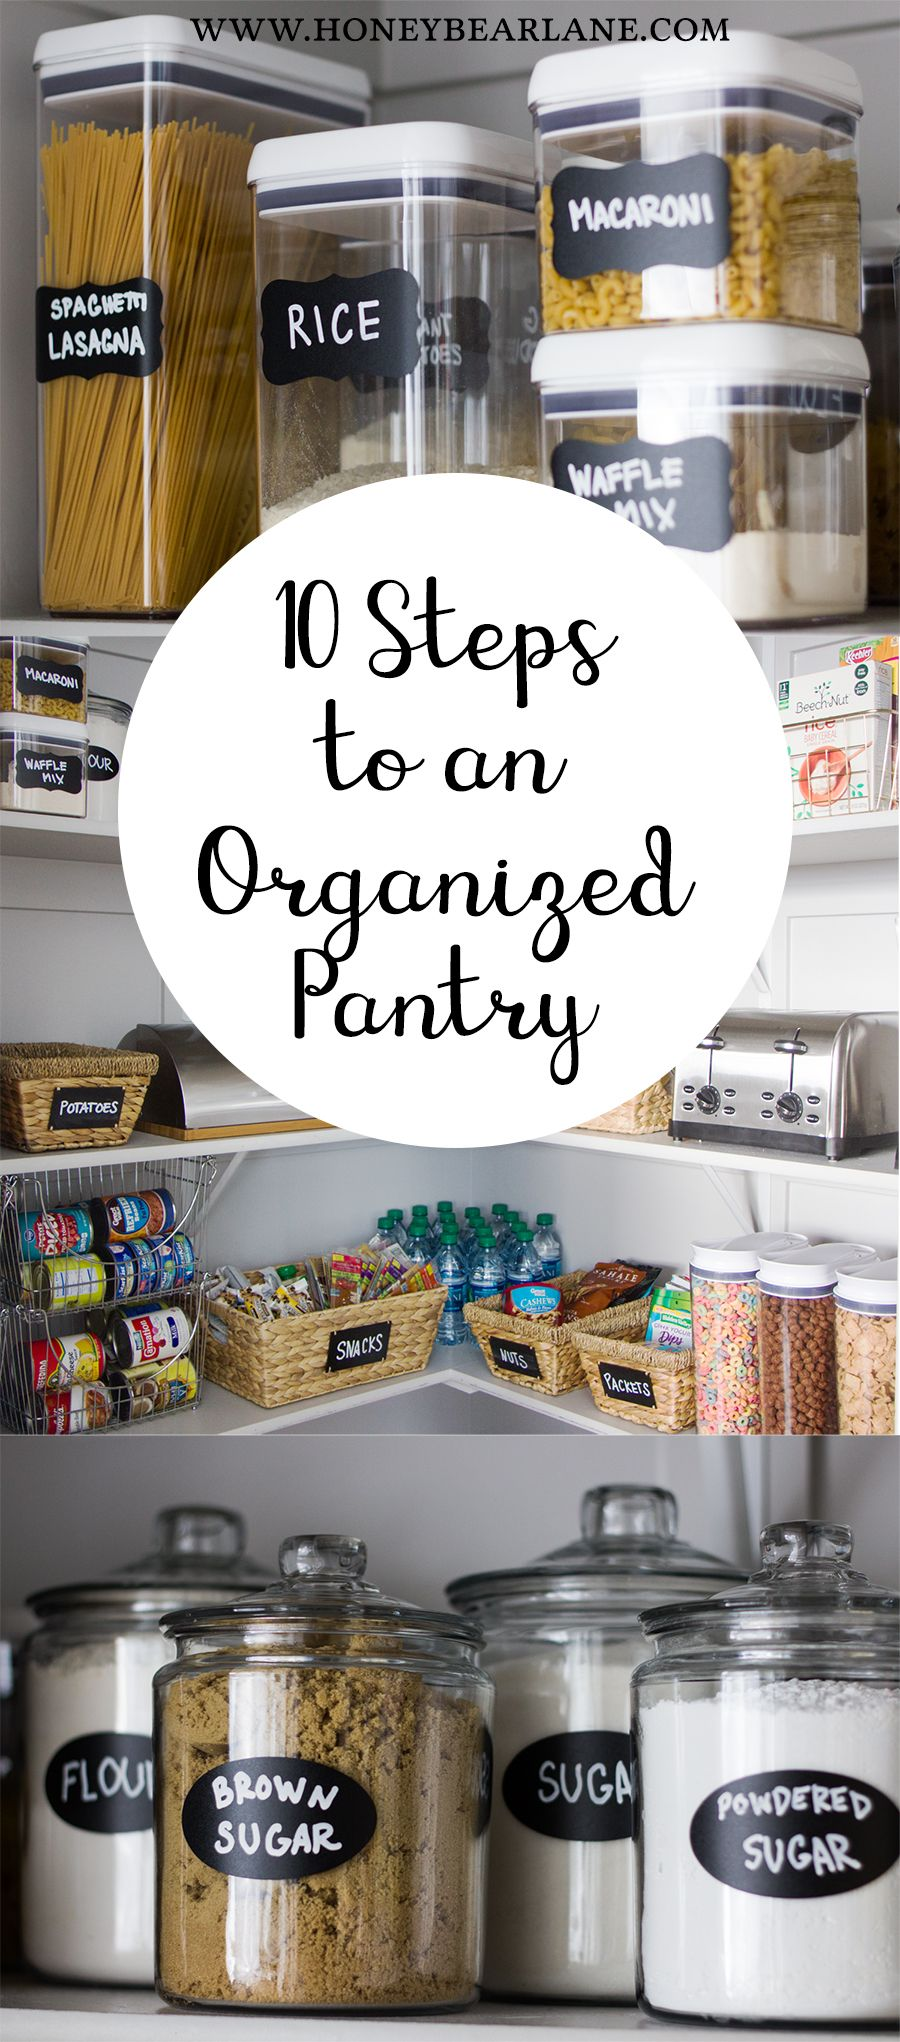 10 Steps to an Organized Pantry | Pinterest | Find food, Pantry and Easy